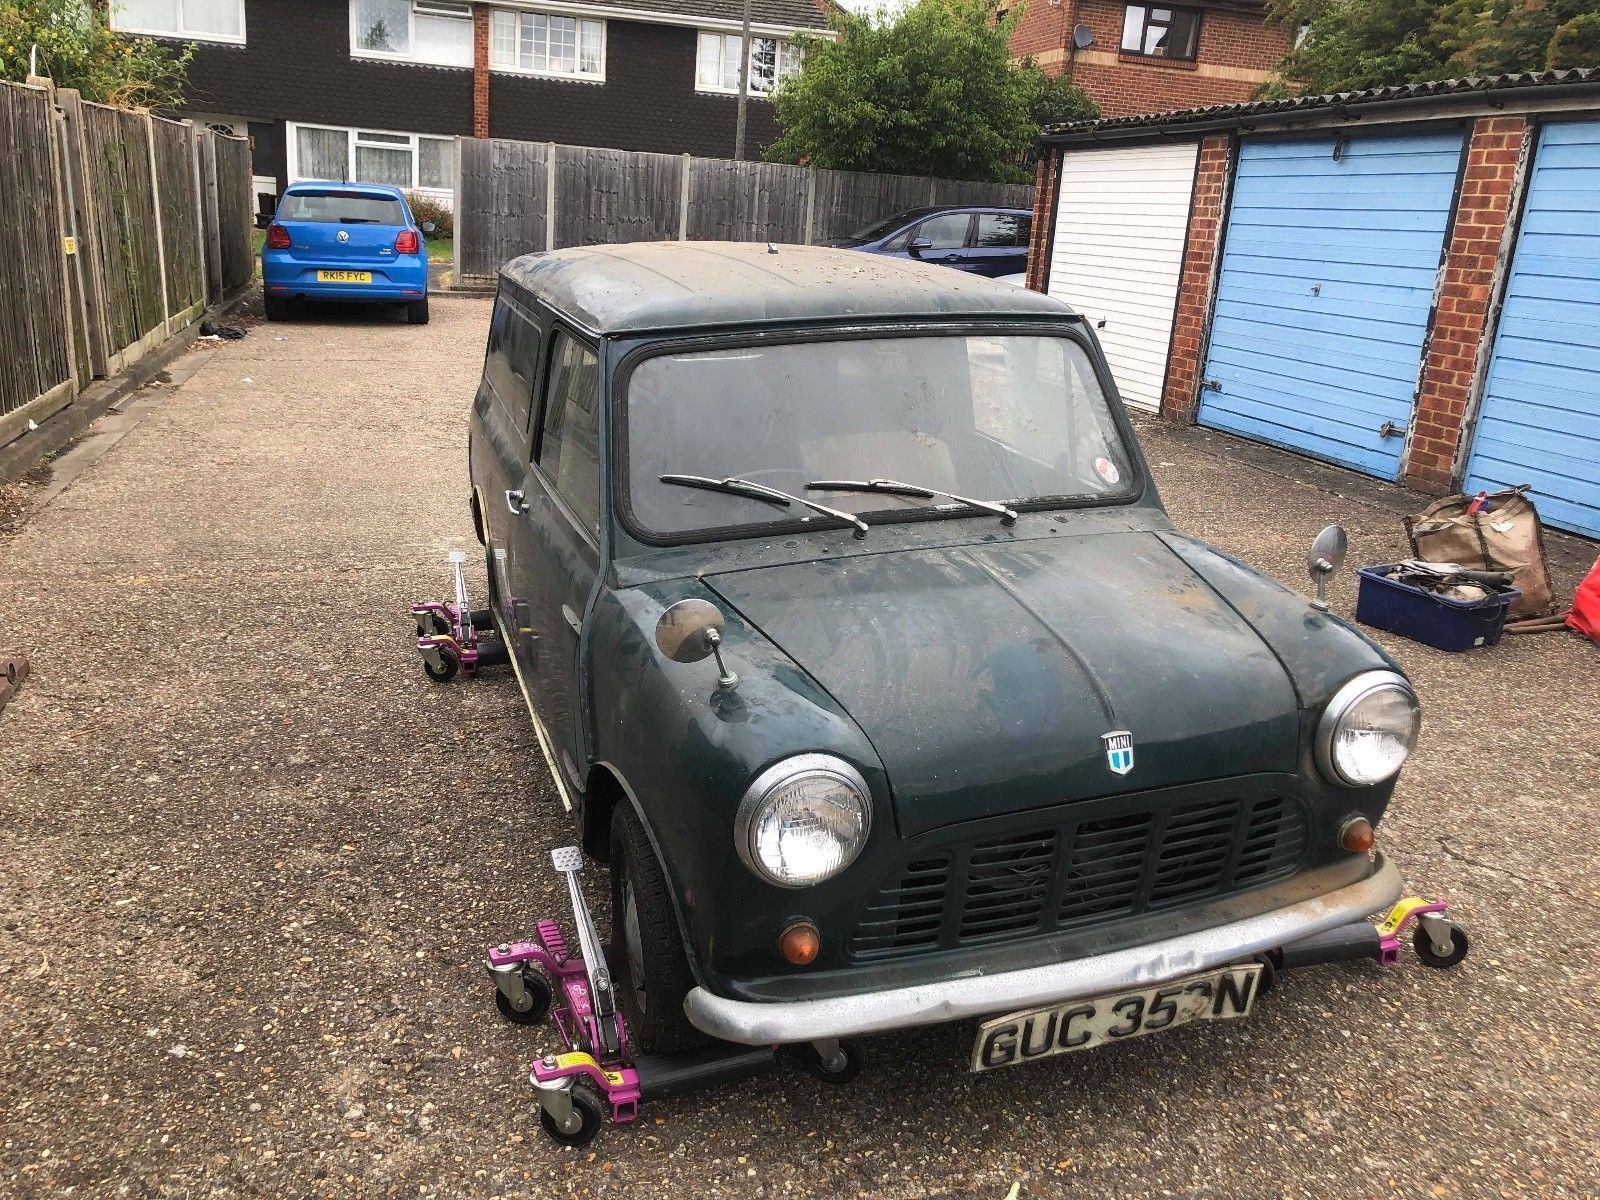 Ebay Mini Van 850 Cc 68 000 Miles Ex Scotland Yard Then Family Owned Resto But Rare Classicmini Mini Mini Van Mini Cars For Sale Mini Trucks